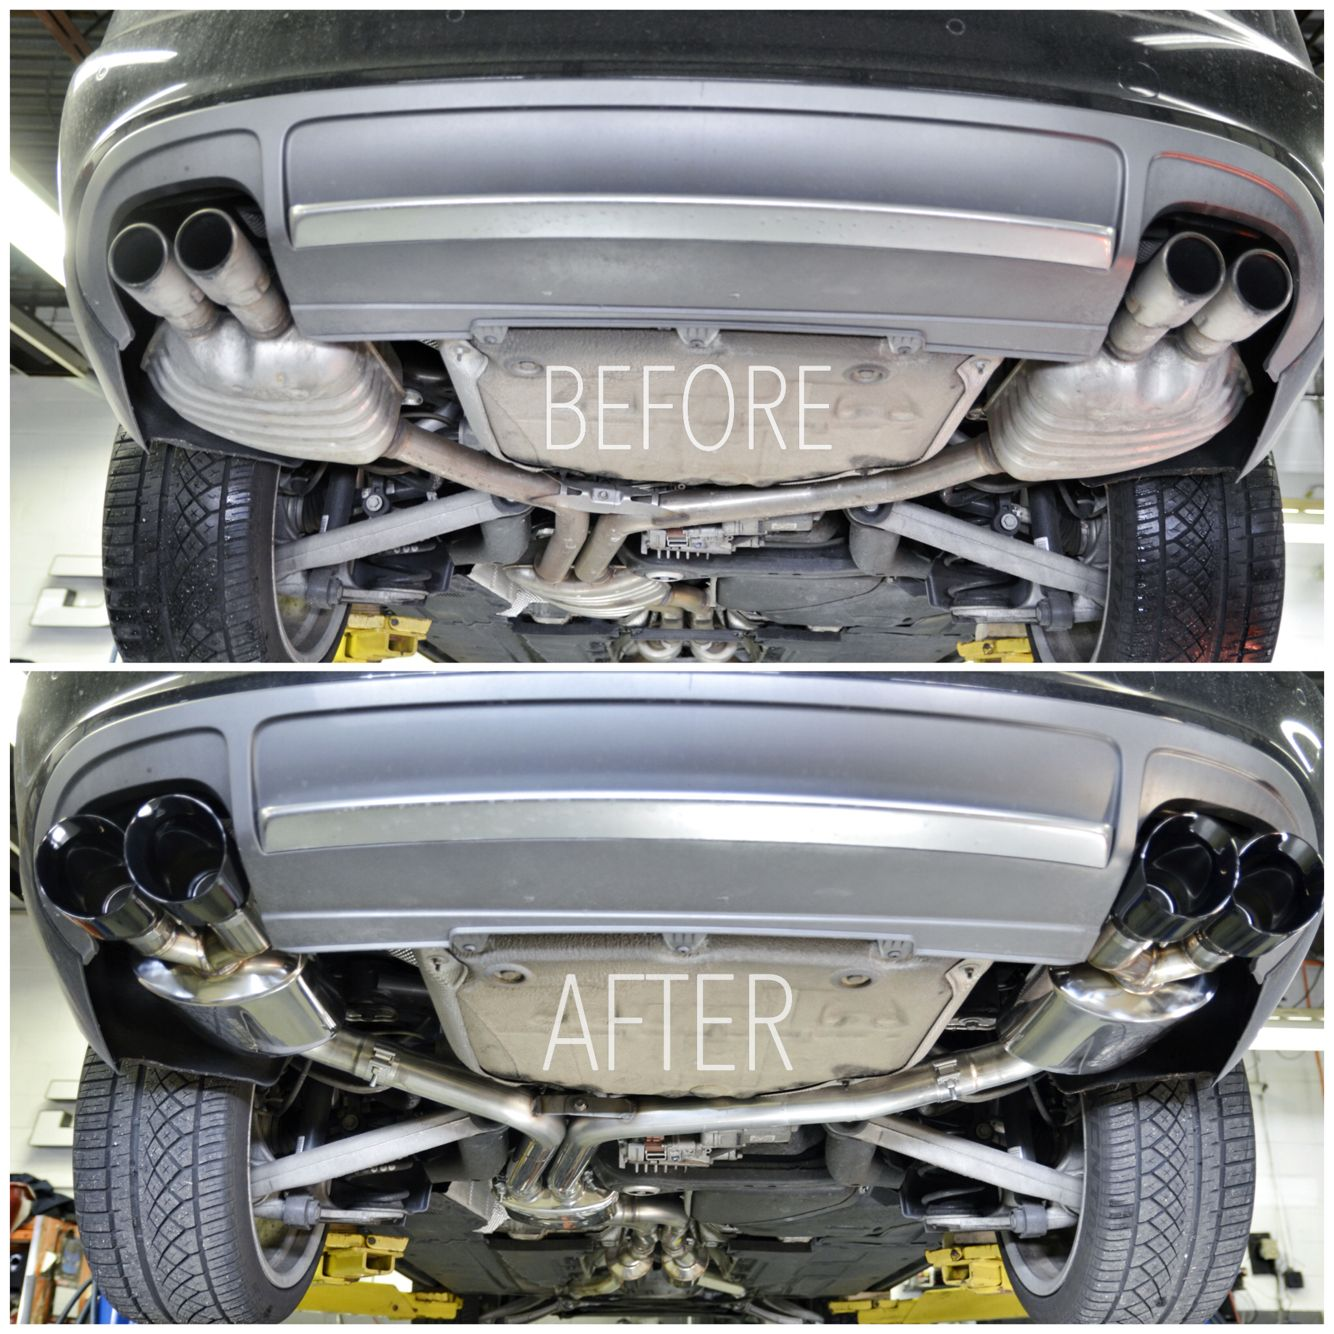 Audi B8 S4 Getting A Full Awetuningofficial Full Exhaust Getting A Trackedition With Res Downpipes And Blackdiamond Tips Audis4 S4 Audi S4 Audi Tri